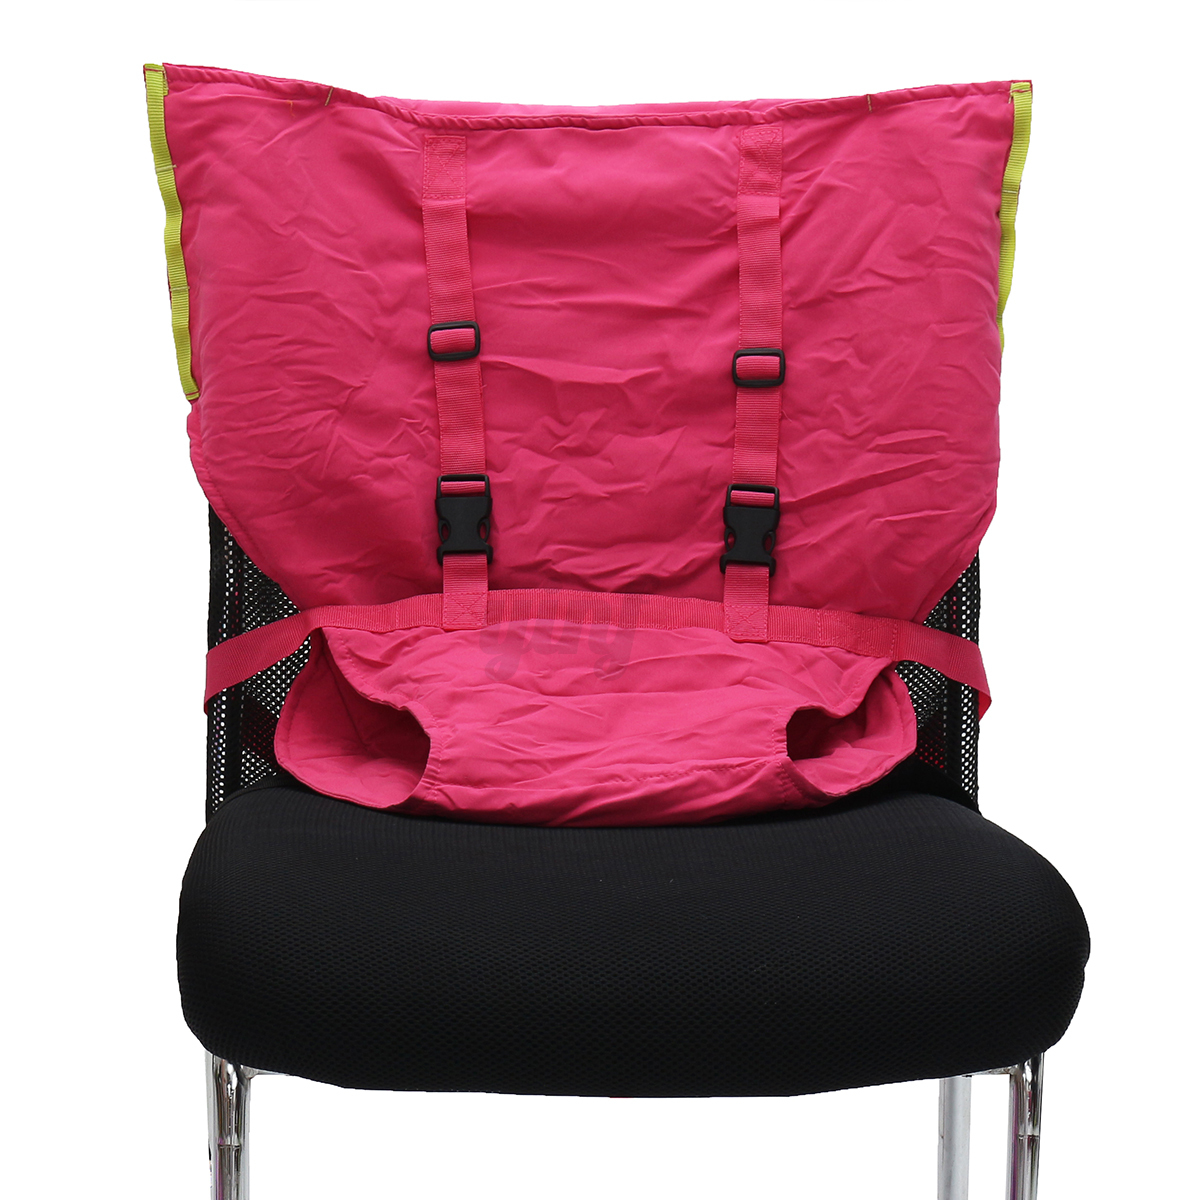 Baby High Chair Cover Portable Baby Infant Kids Feeding High Chair Harness Seat